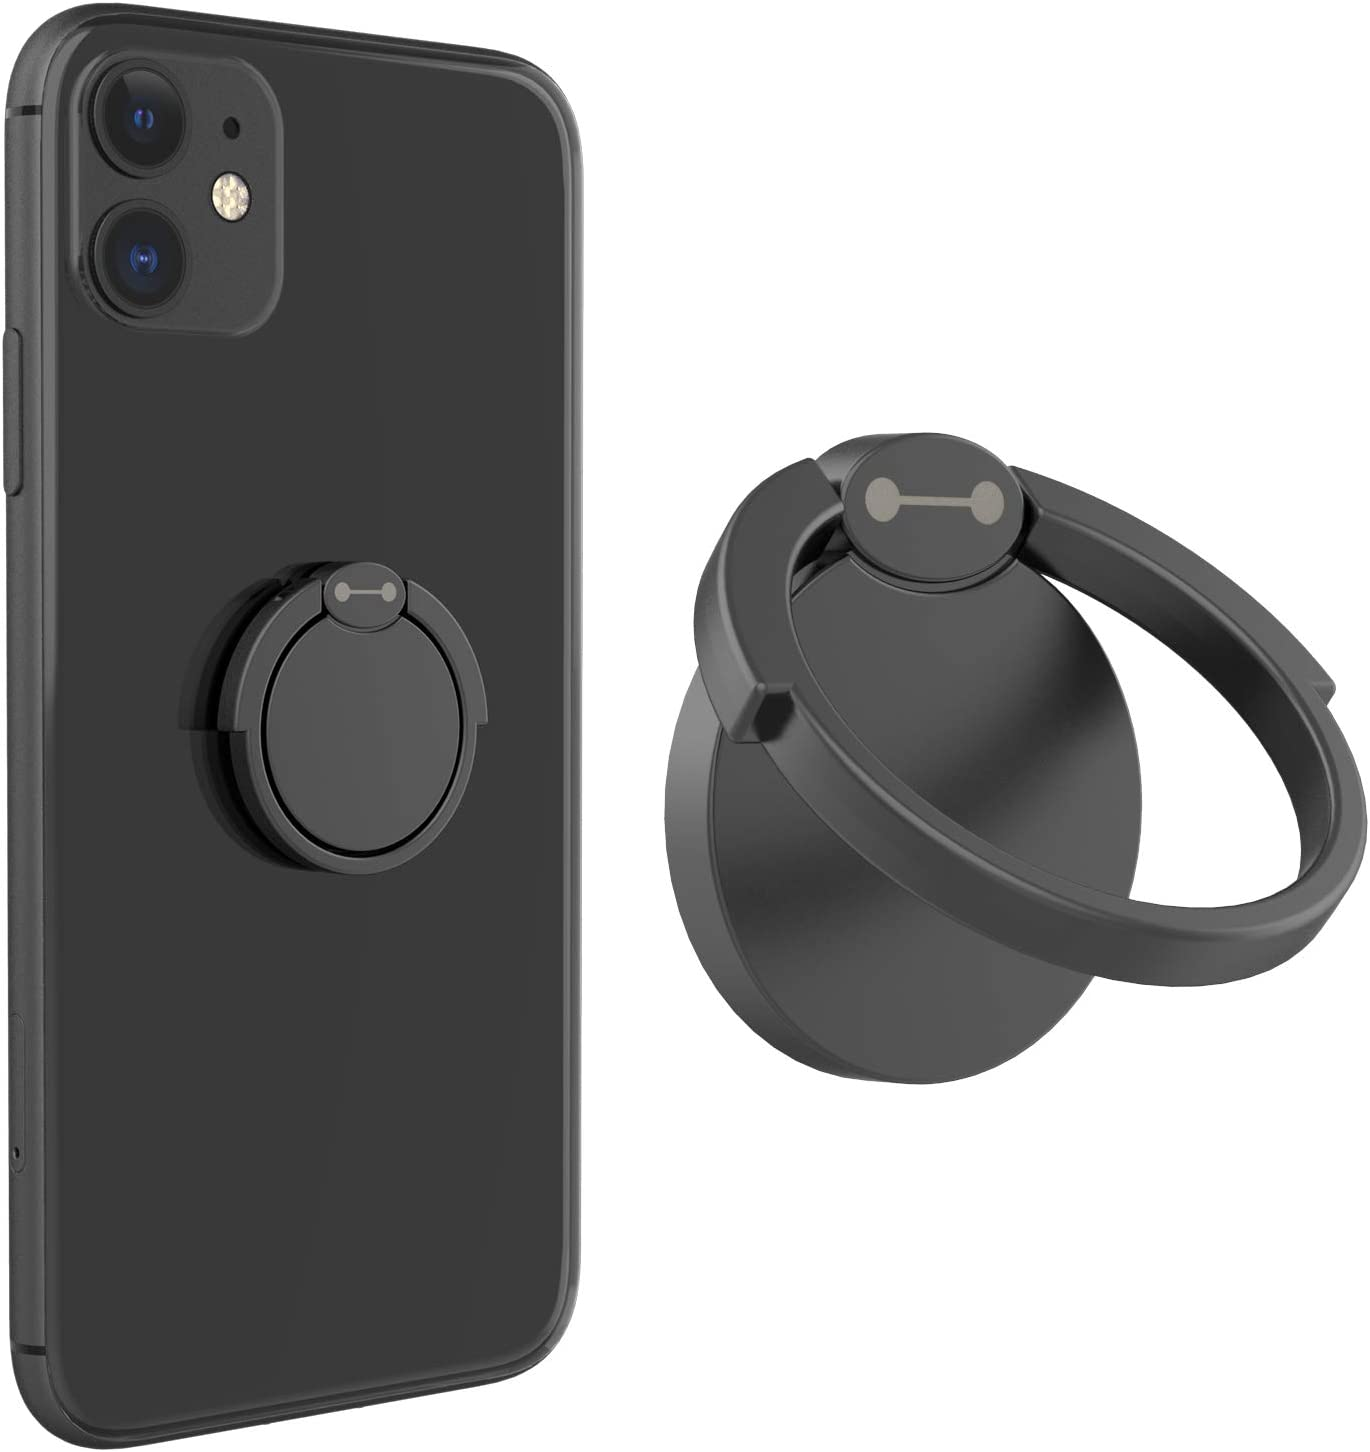 Samsung Galaxy and Other Smartphones Matte Black VELAGOL Cell Phone Ring Holder Stand 360/° Rotation Universal Phone Ring Kickstand Grip Compatible with iPhone 11//Xs//Xs MAX//X//8//8 Plus//7//7 Plus